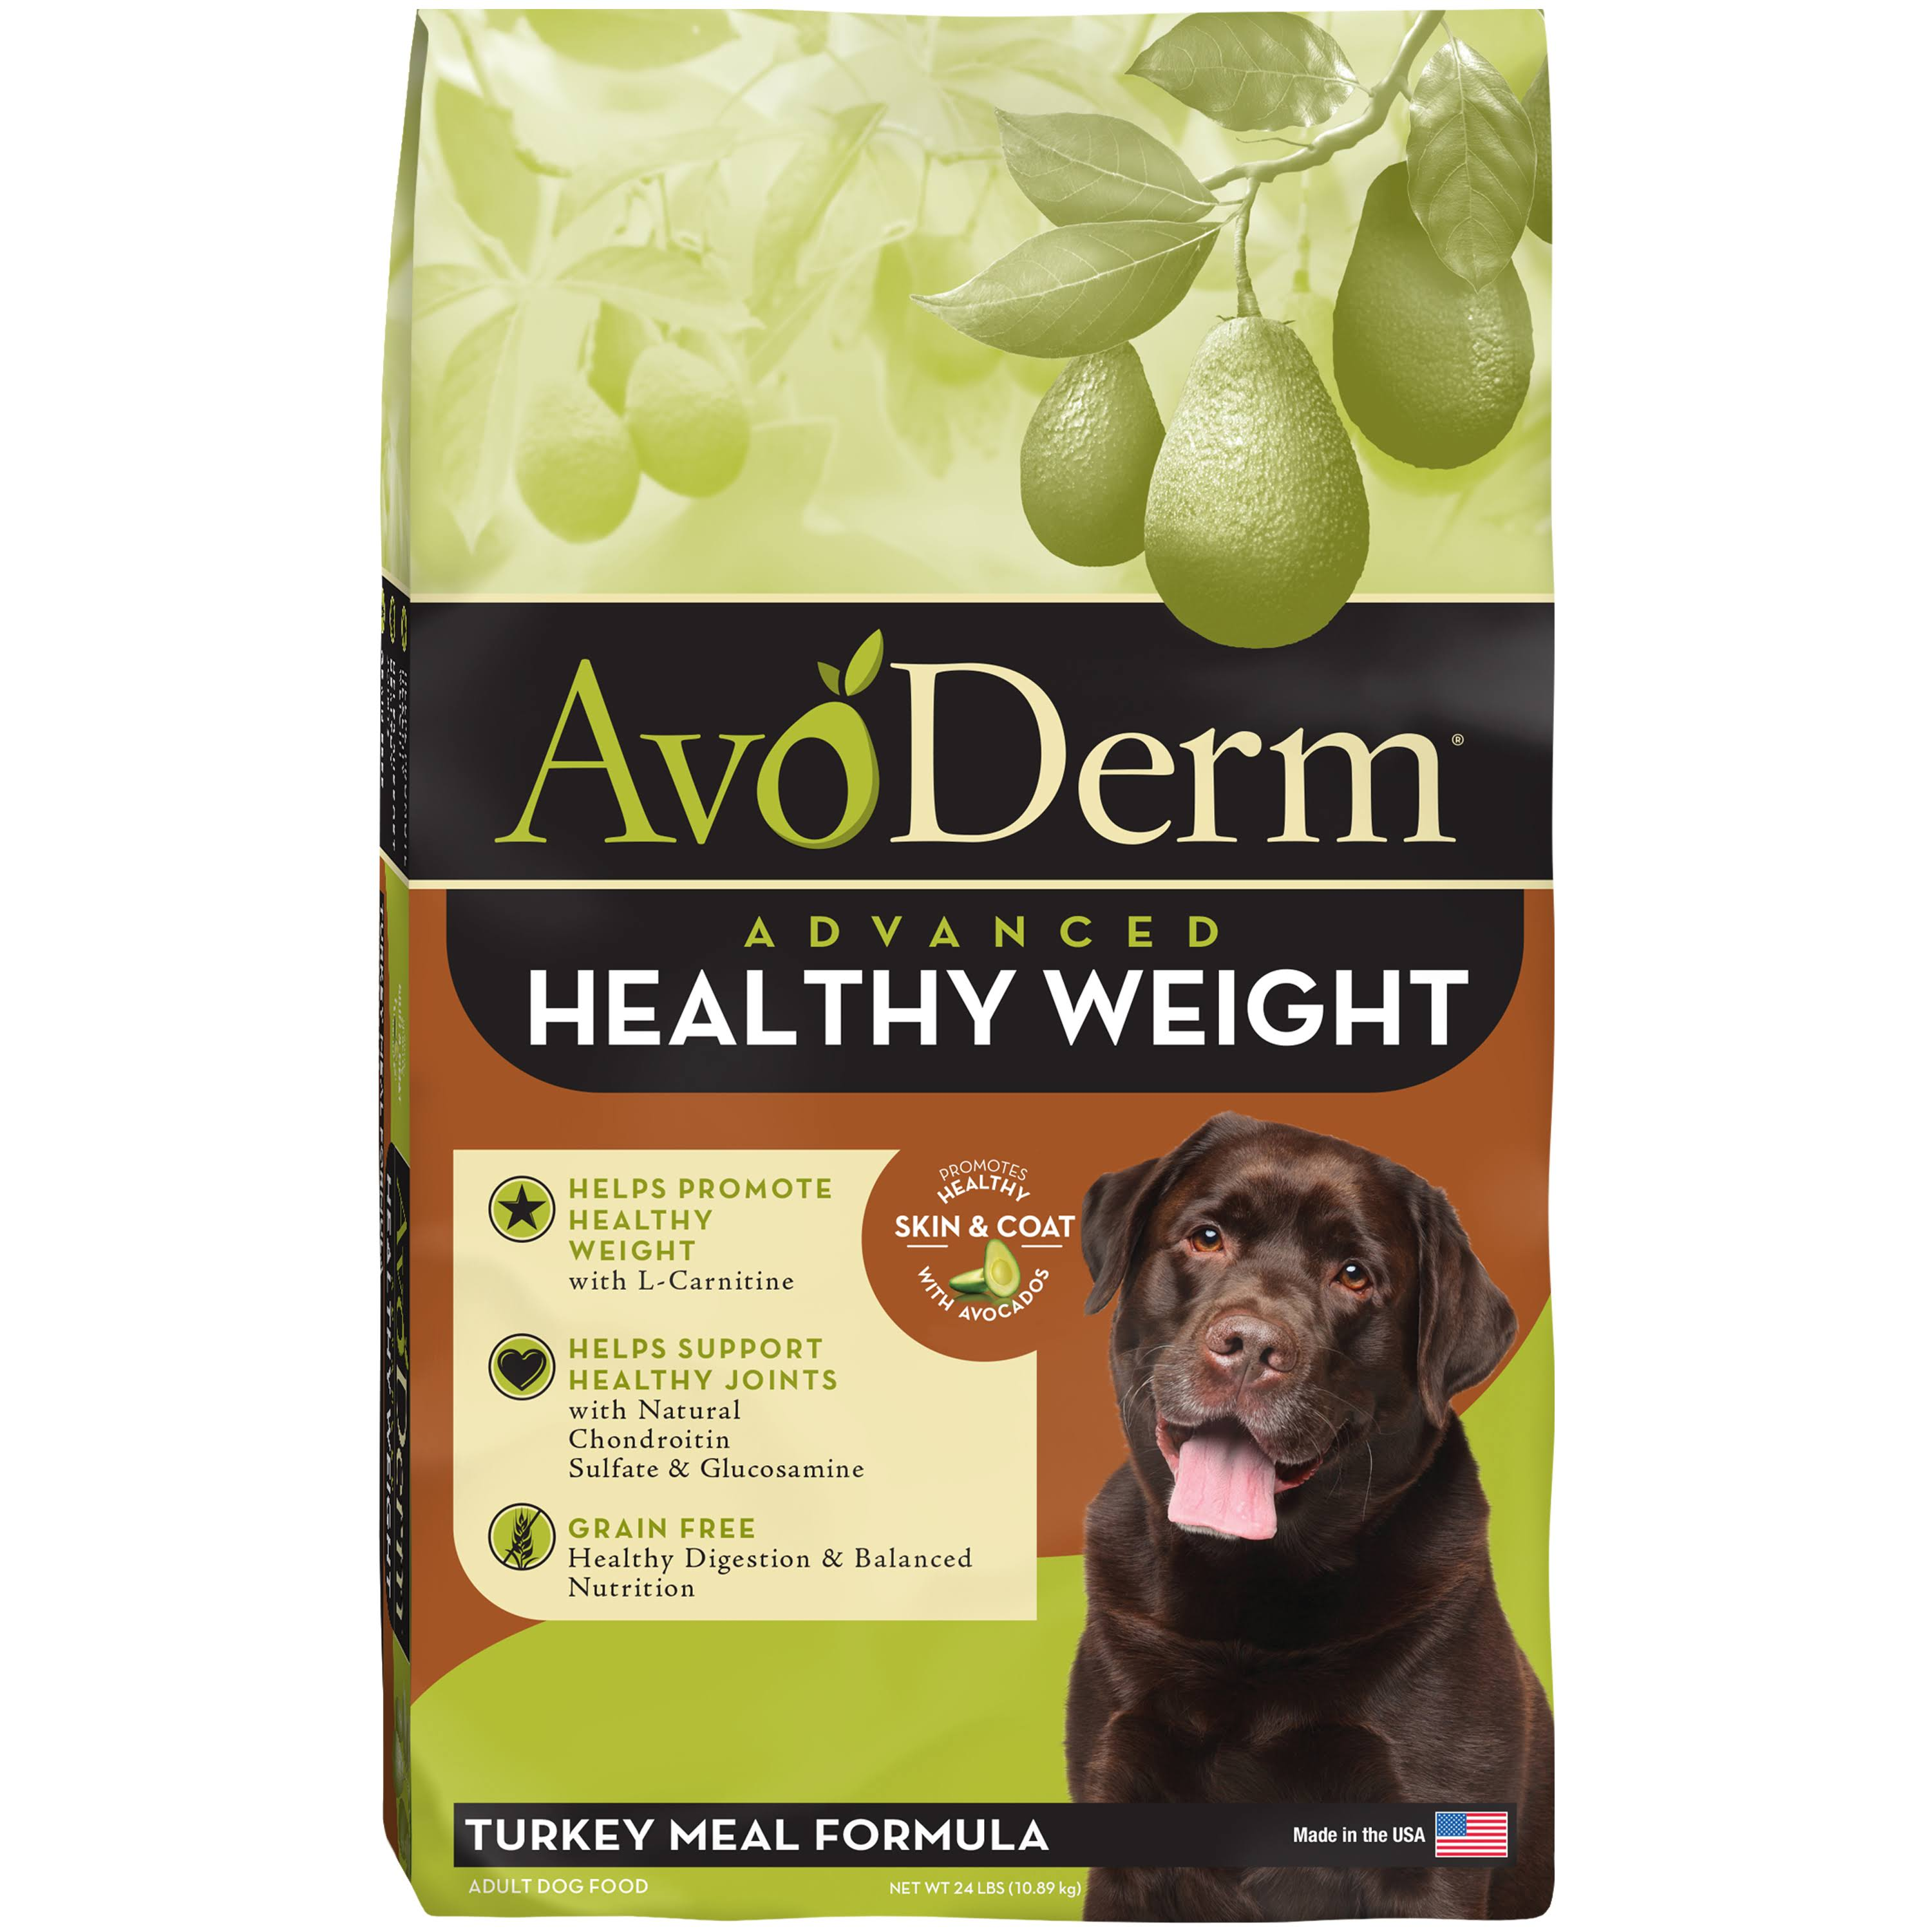 AvoDerm Grain Free Advanced Healthy Weight Turkey Meal Recipe Dry Dog Food - 24-lb